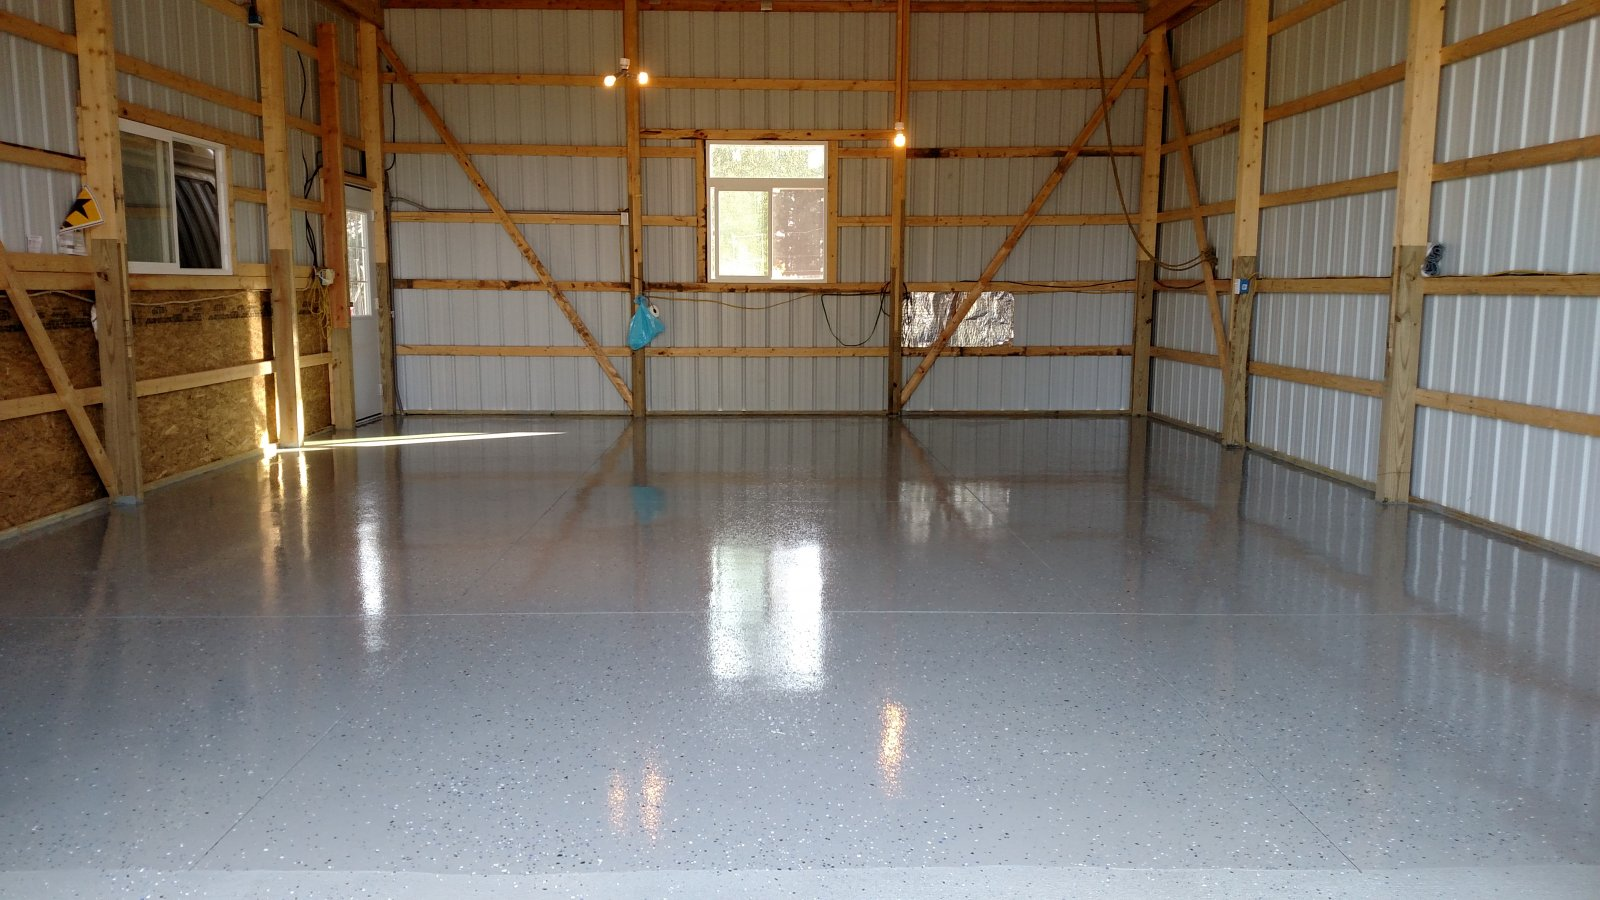 Click image for larger version  Name:Eddie's new place.jpg Views:106 Size:249.3 KB ID:326816